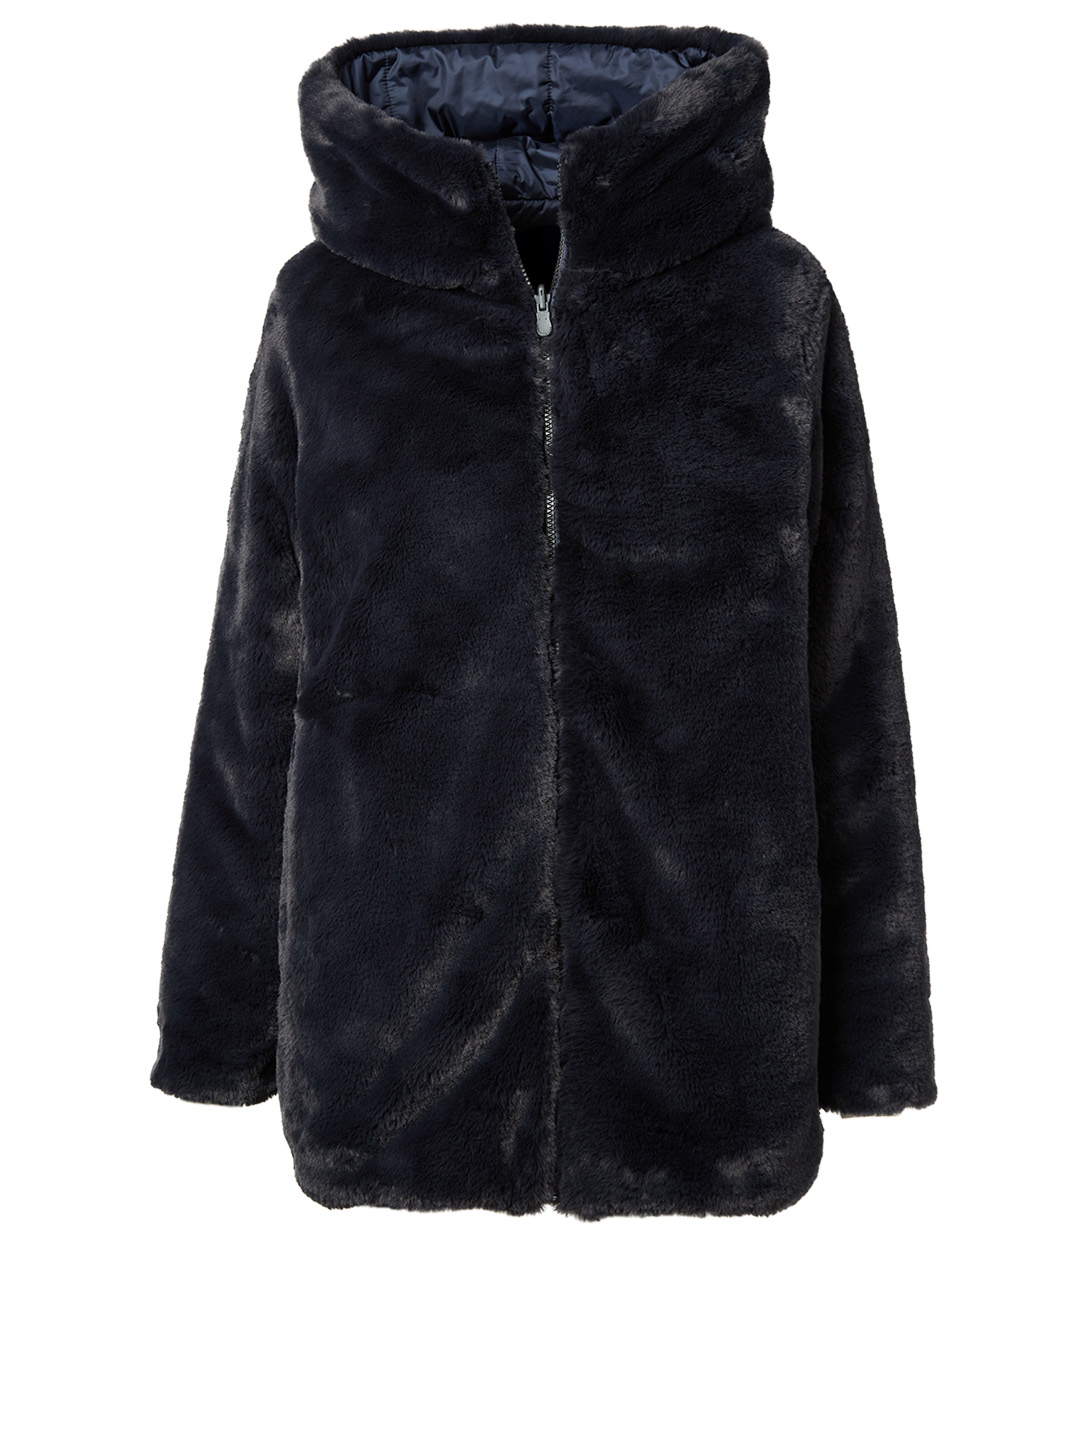 SAVE THE DUCK Fury Faux Fur Midi Reversible Coat With Hood Women's Black